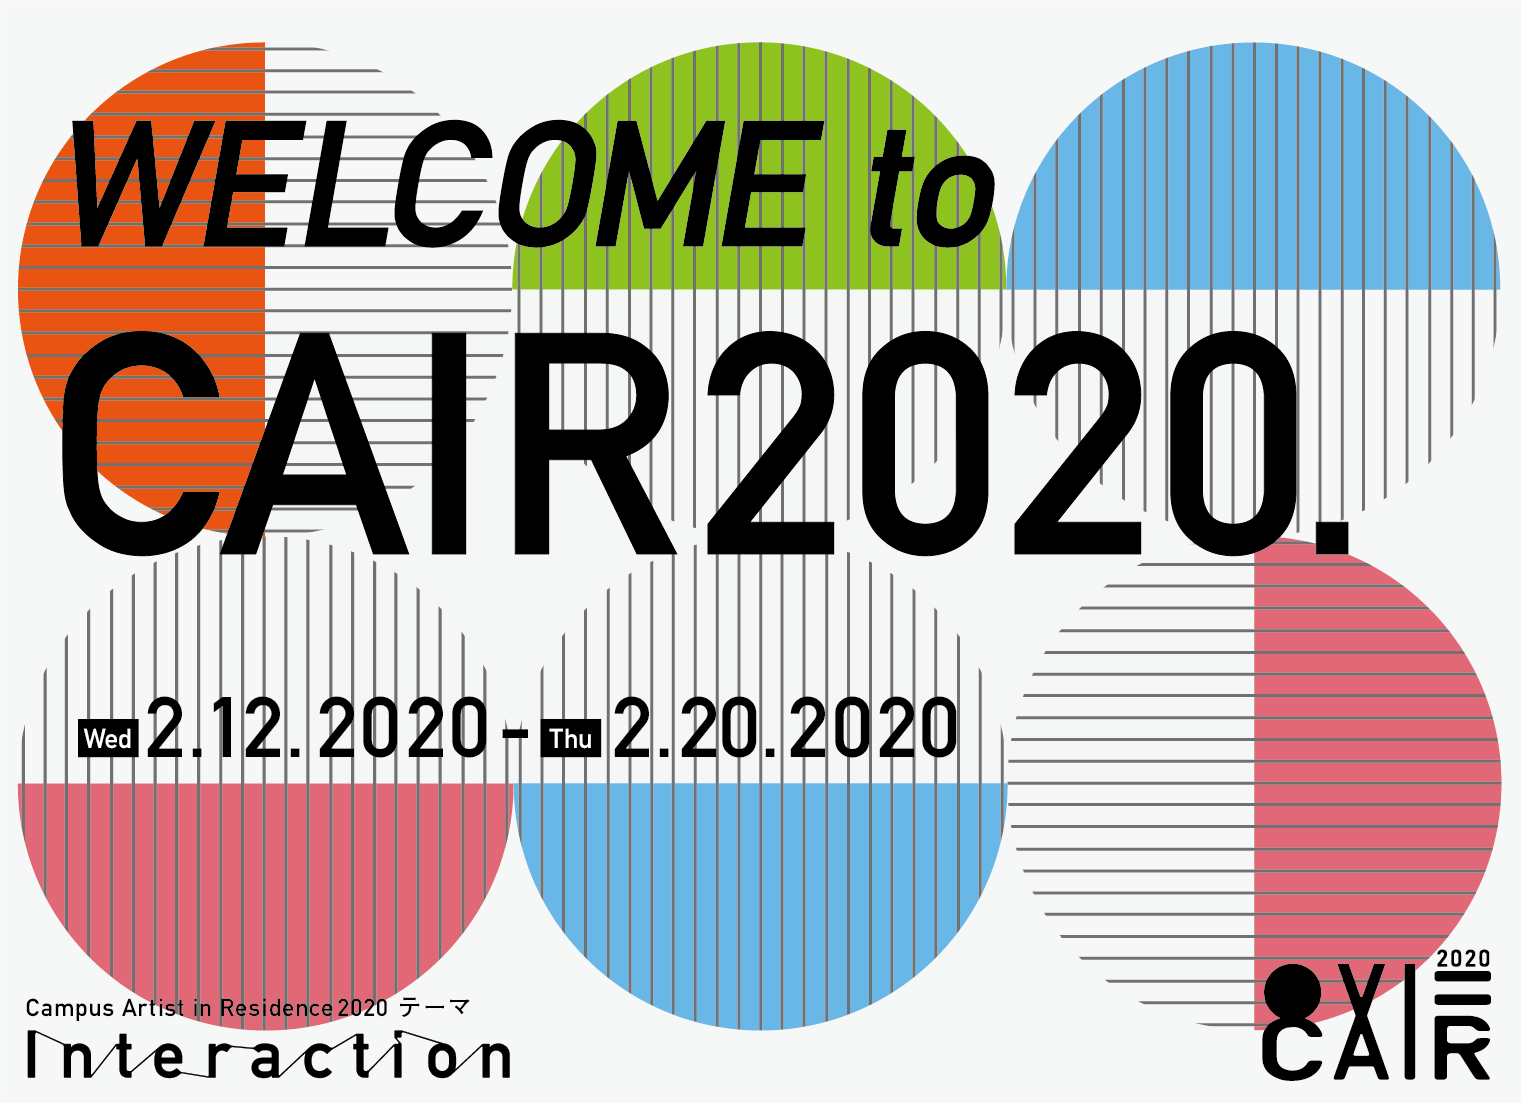 CAIR2020を開催いたします。